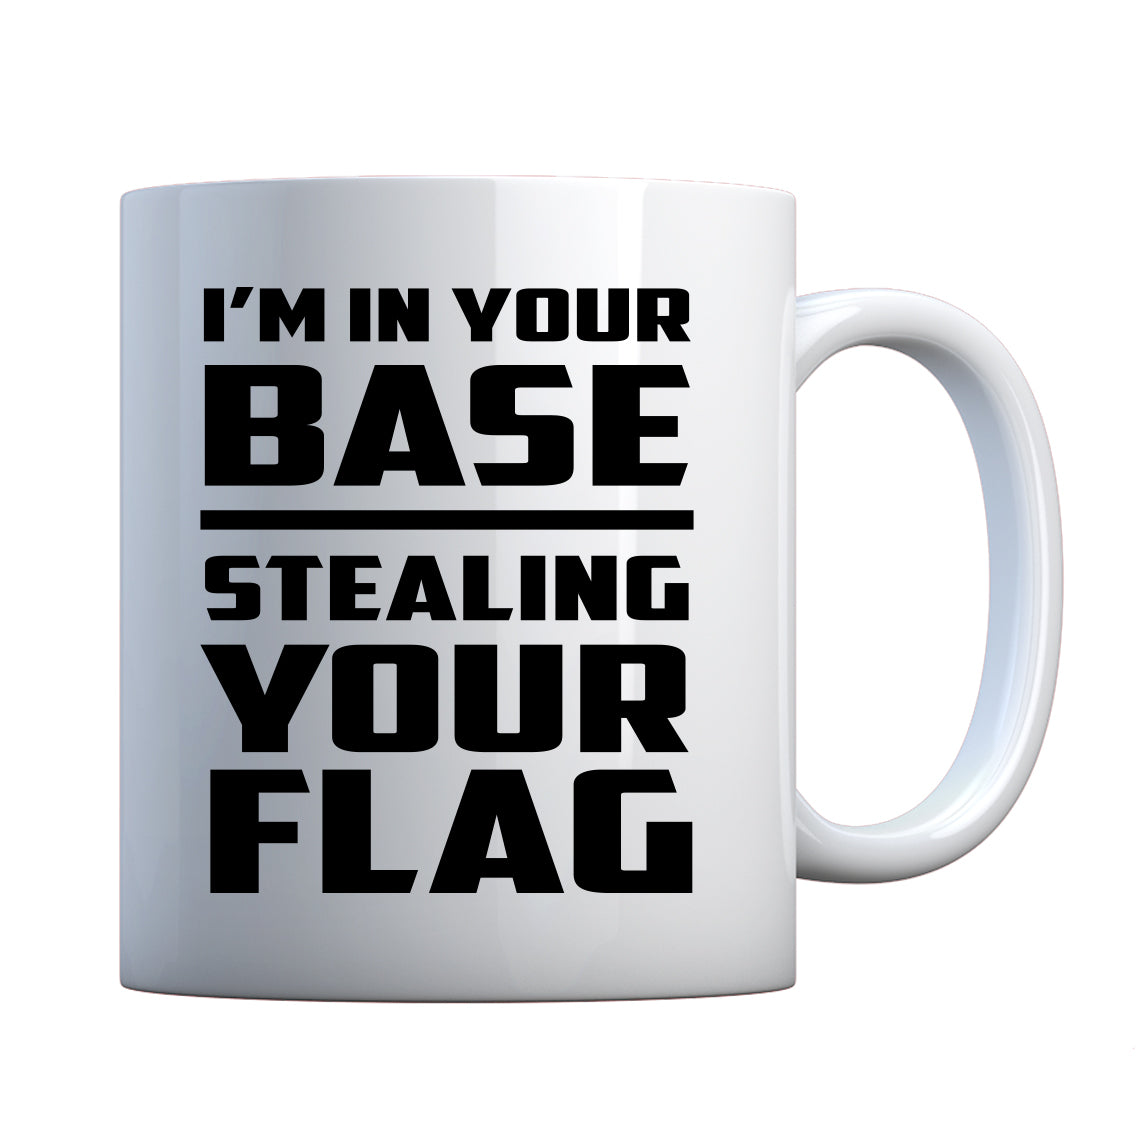 I'm In Your Base Stealing Your Flag Ceramic Gift Mug